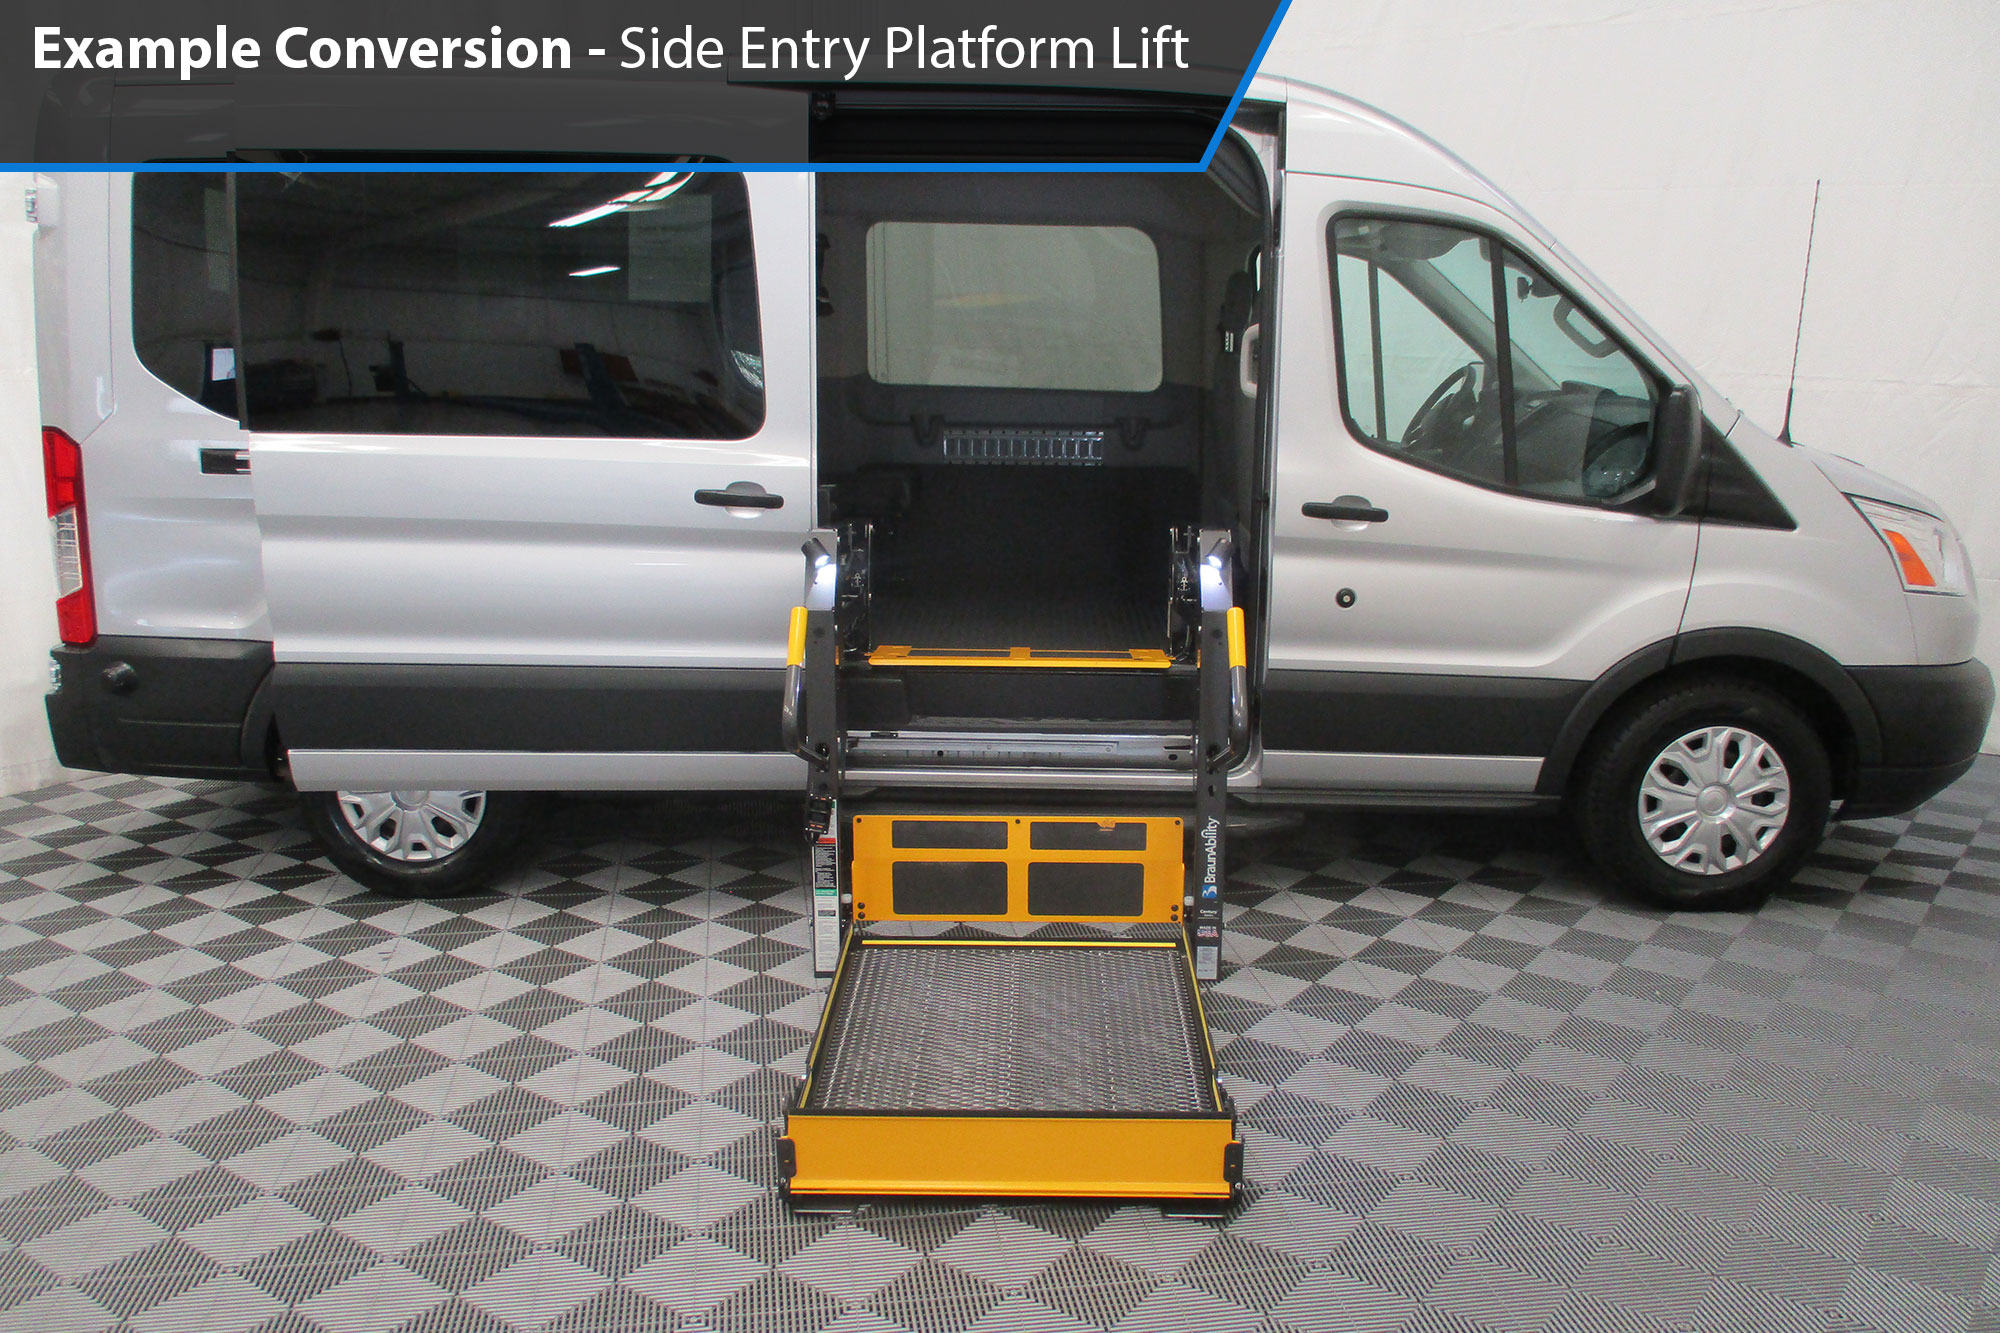 Ams ford transit side lift conversion images thumb 5